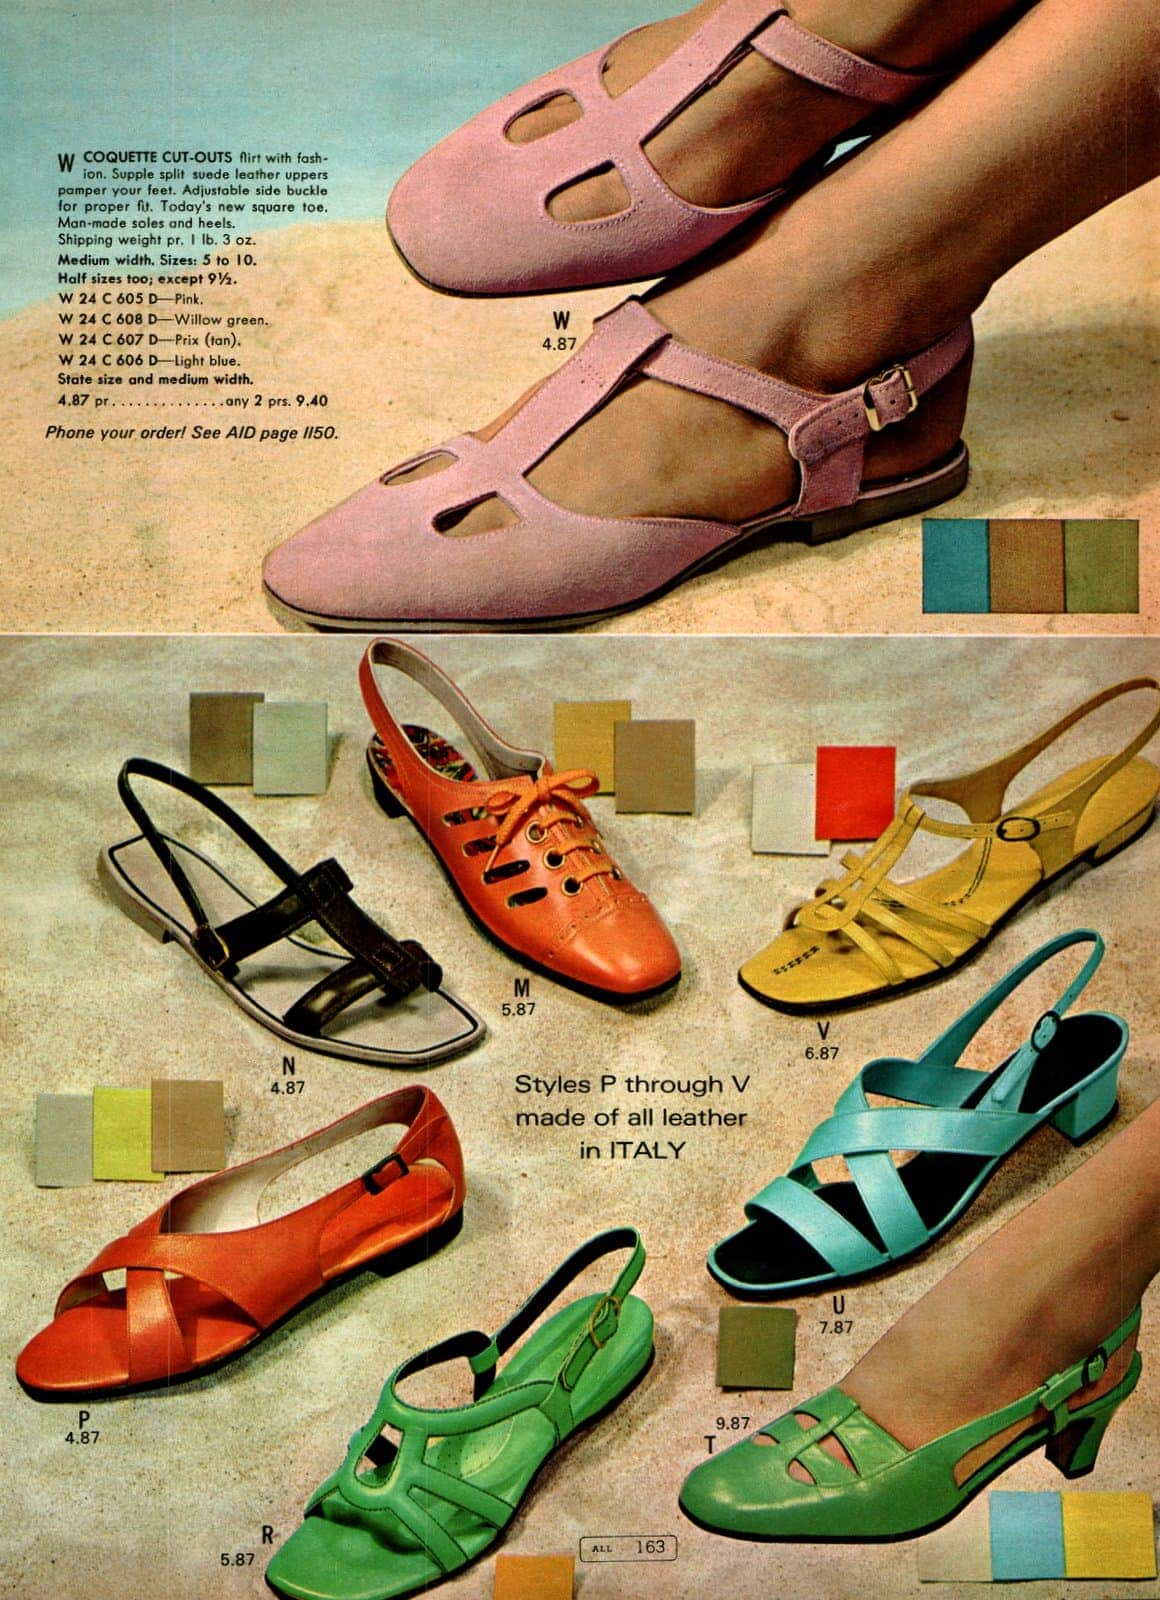 Vintage '60s flat shoes & fashionable low-heeled footwear for women